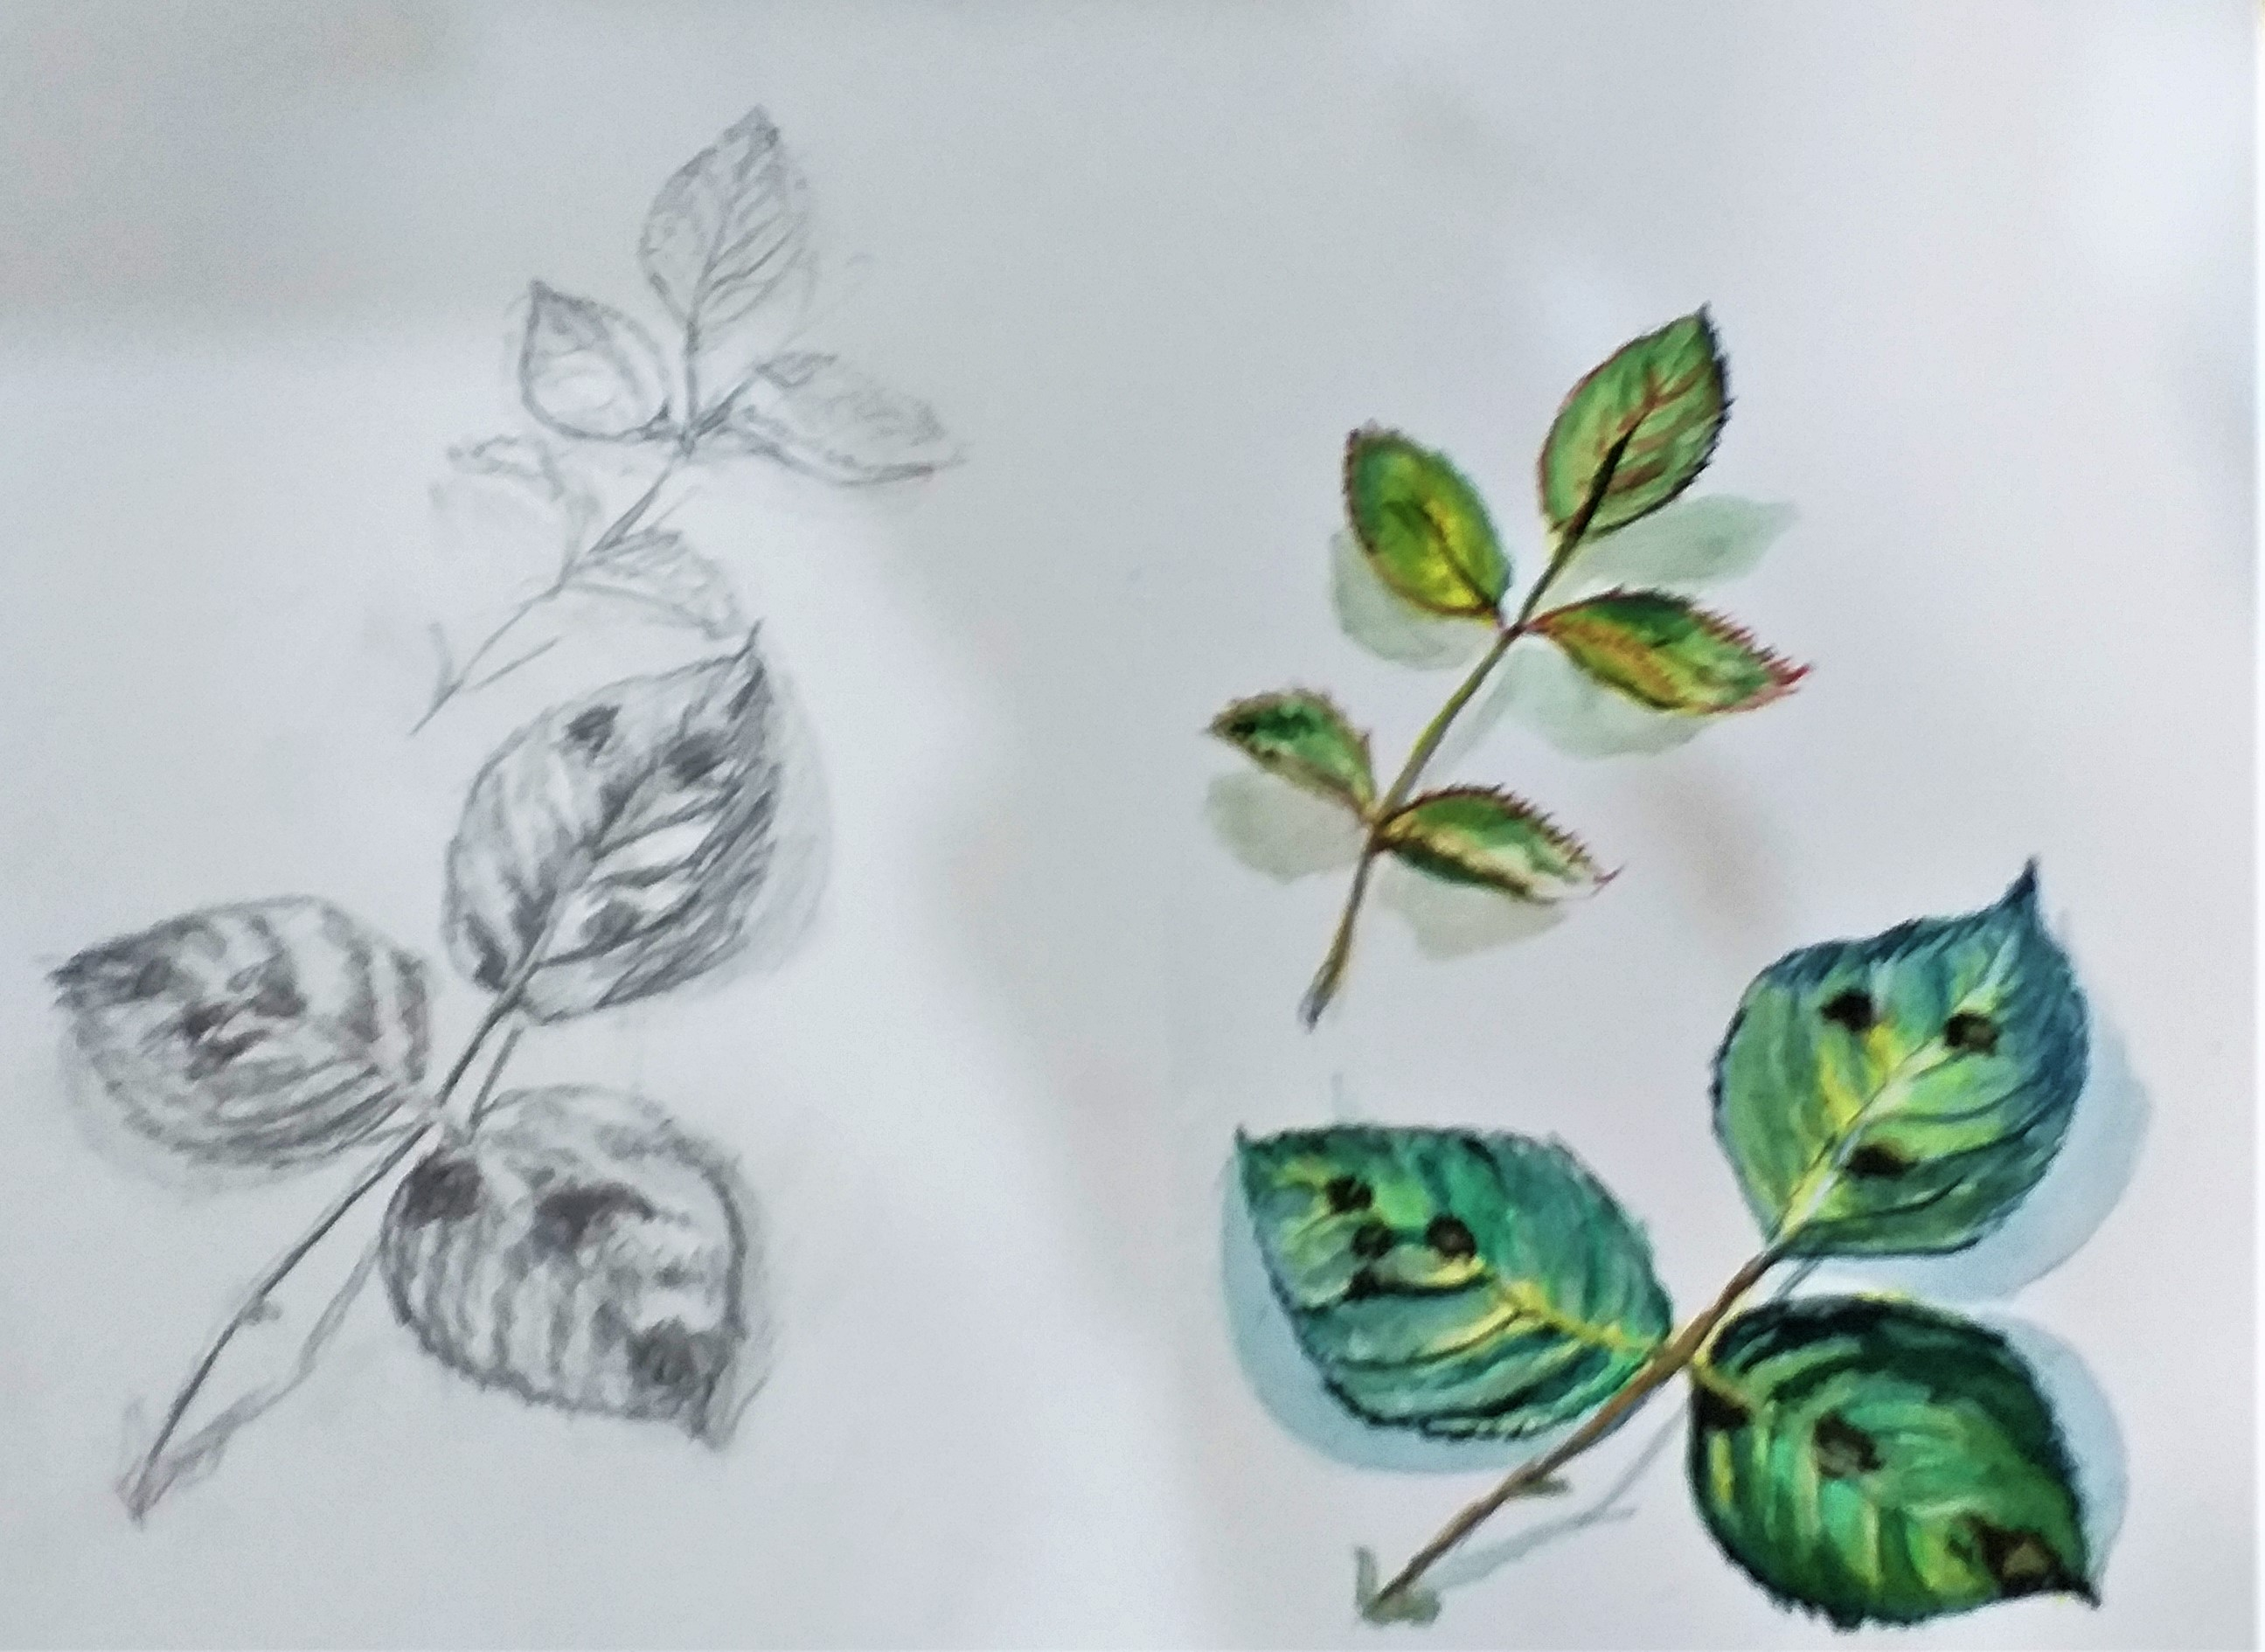 Watercolour and pencil studies of leaves created by a student at Raya's Art Classes in West Midlands